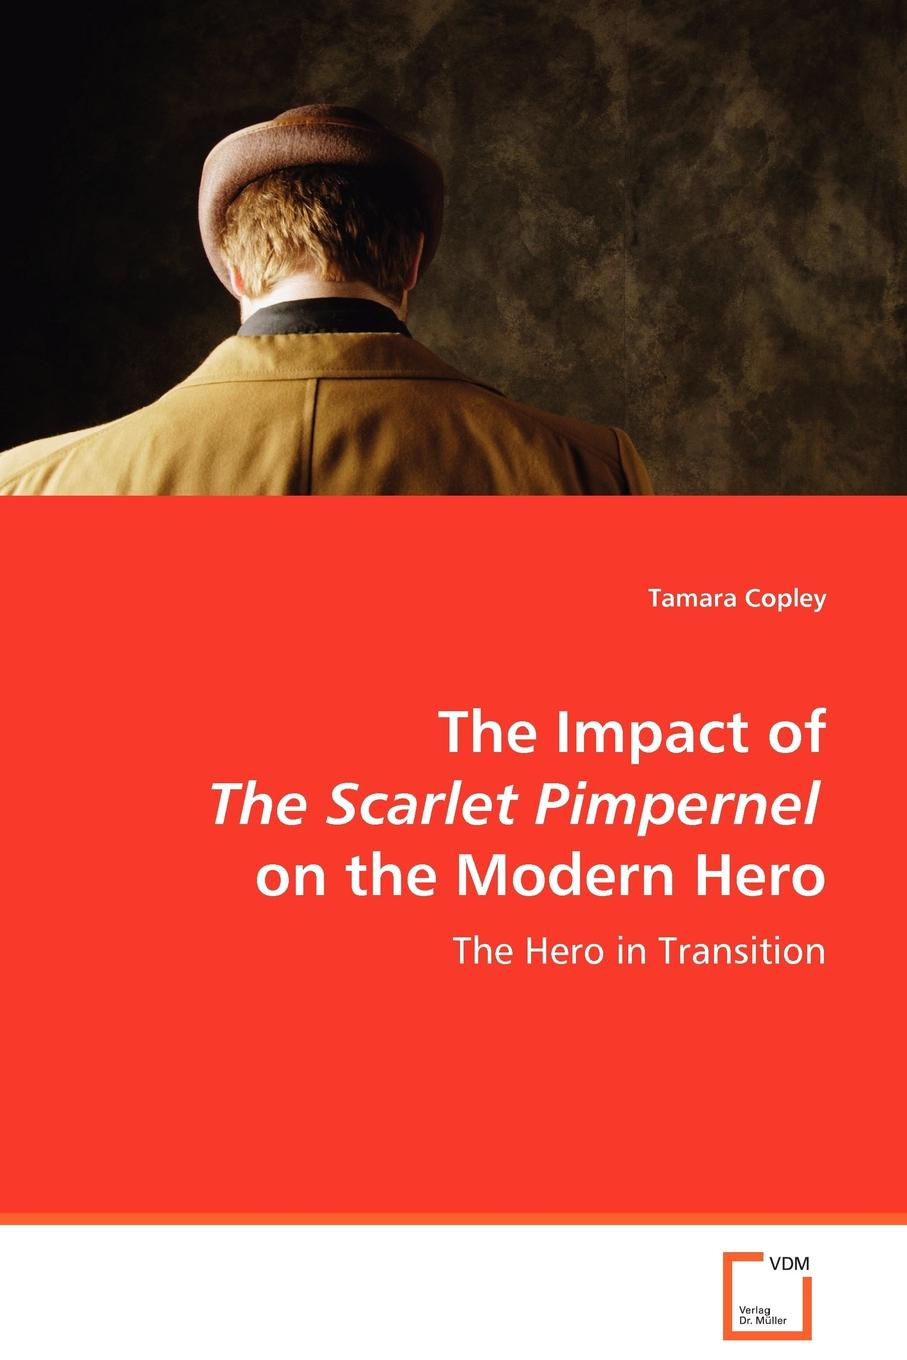 Tamara Copley The Impact of The Scarlet Pimpernel on the Modern Hero bakhtin the formal method in literary scholarship